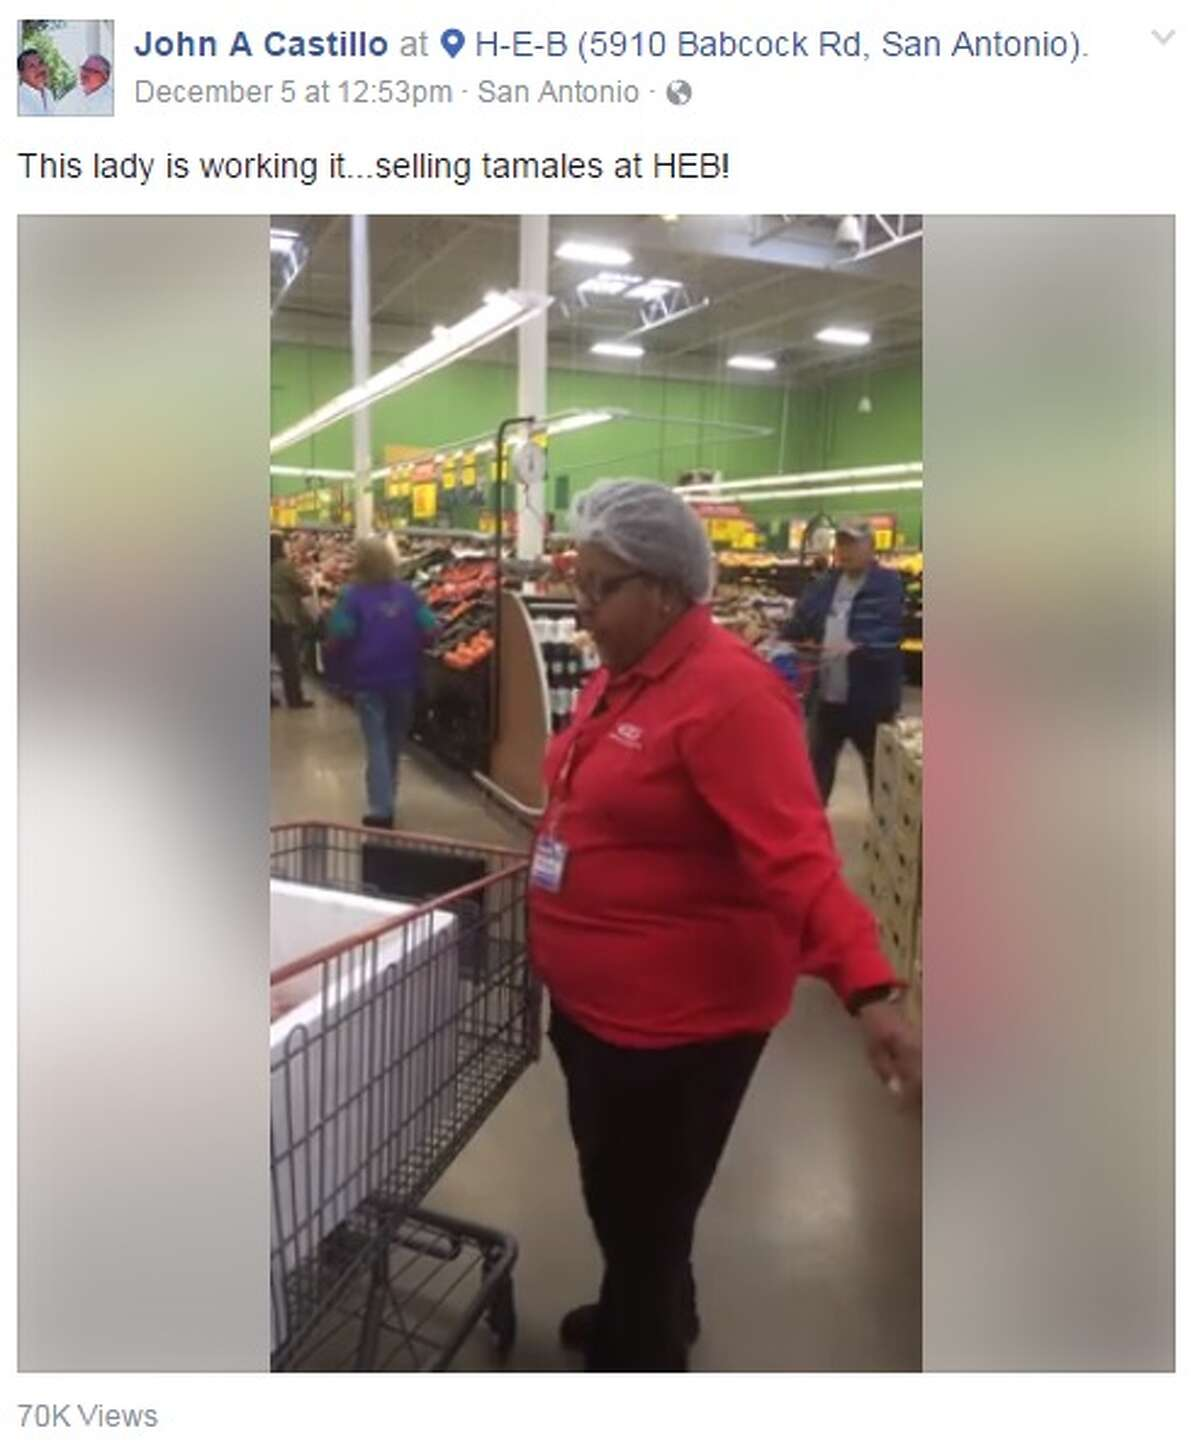 Selling tamales in San Antonio isn't a tough pitch, but a local H-E-B worker went ahead and added her own flair to the business and social media is eating it up.